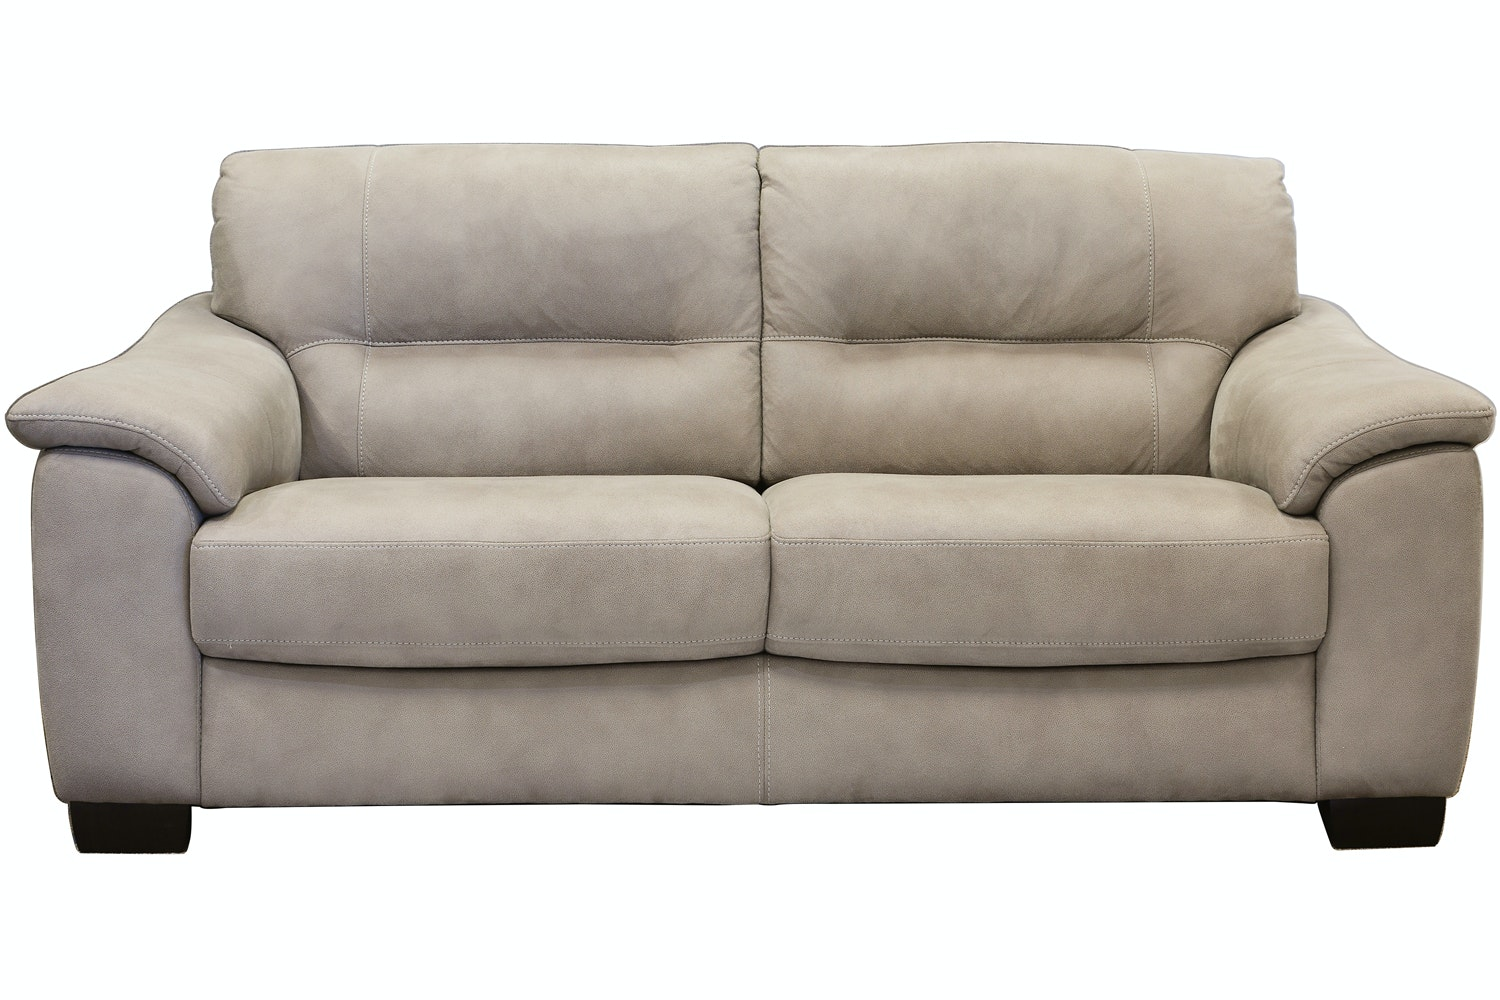 Becky 2 Seater Sofa